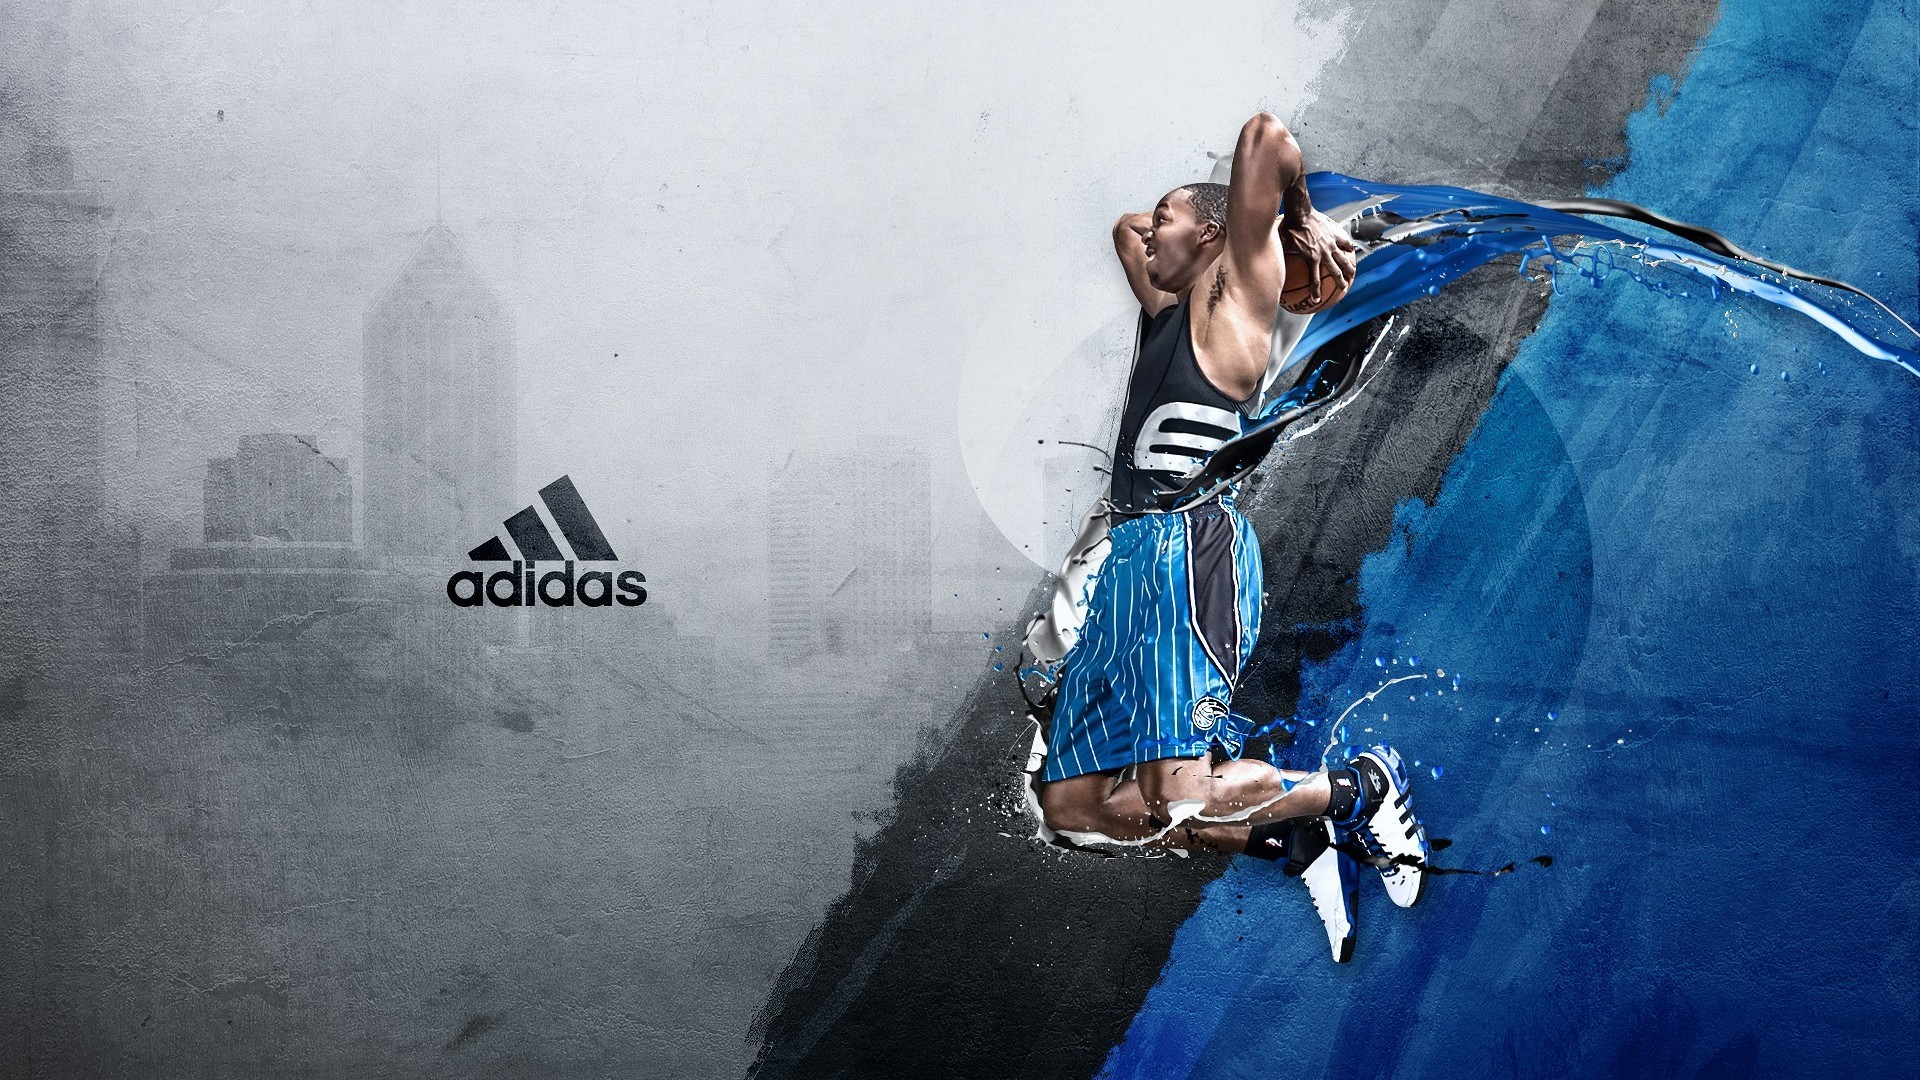 Adidas Basketball HD Desktop Wallpaper HD Desktop Wallpaper 1920x1080